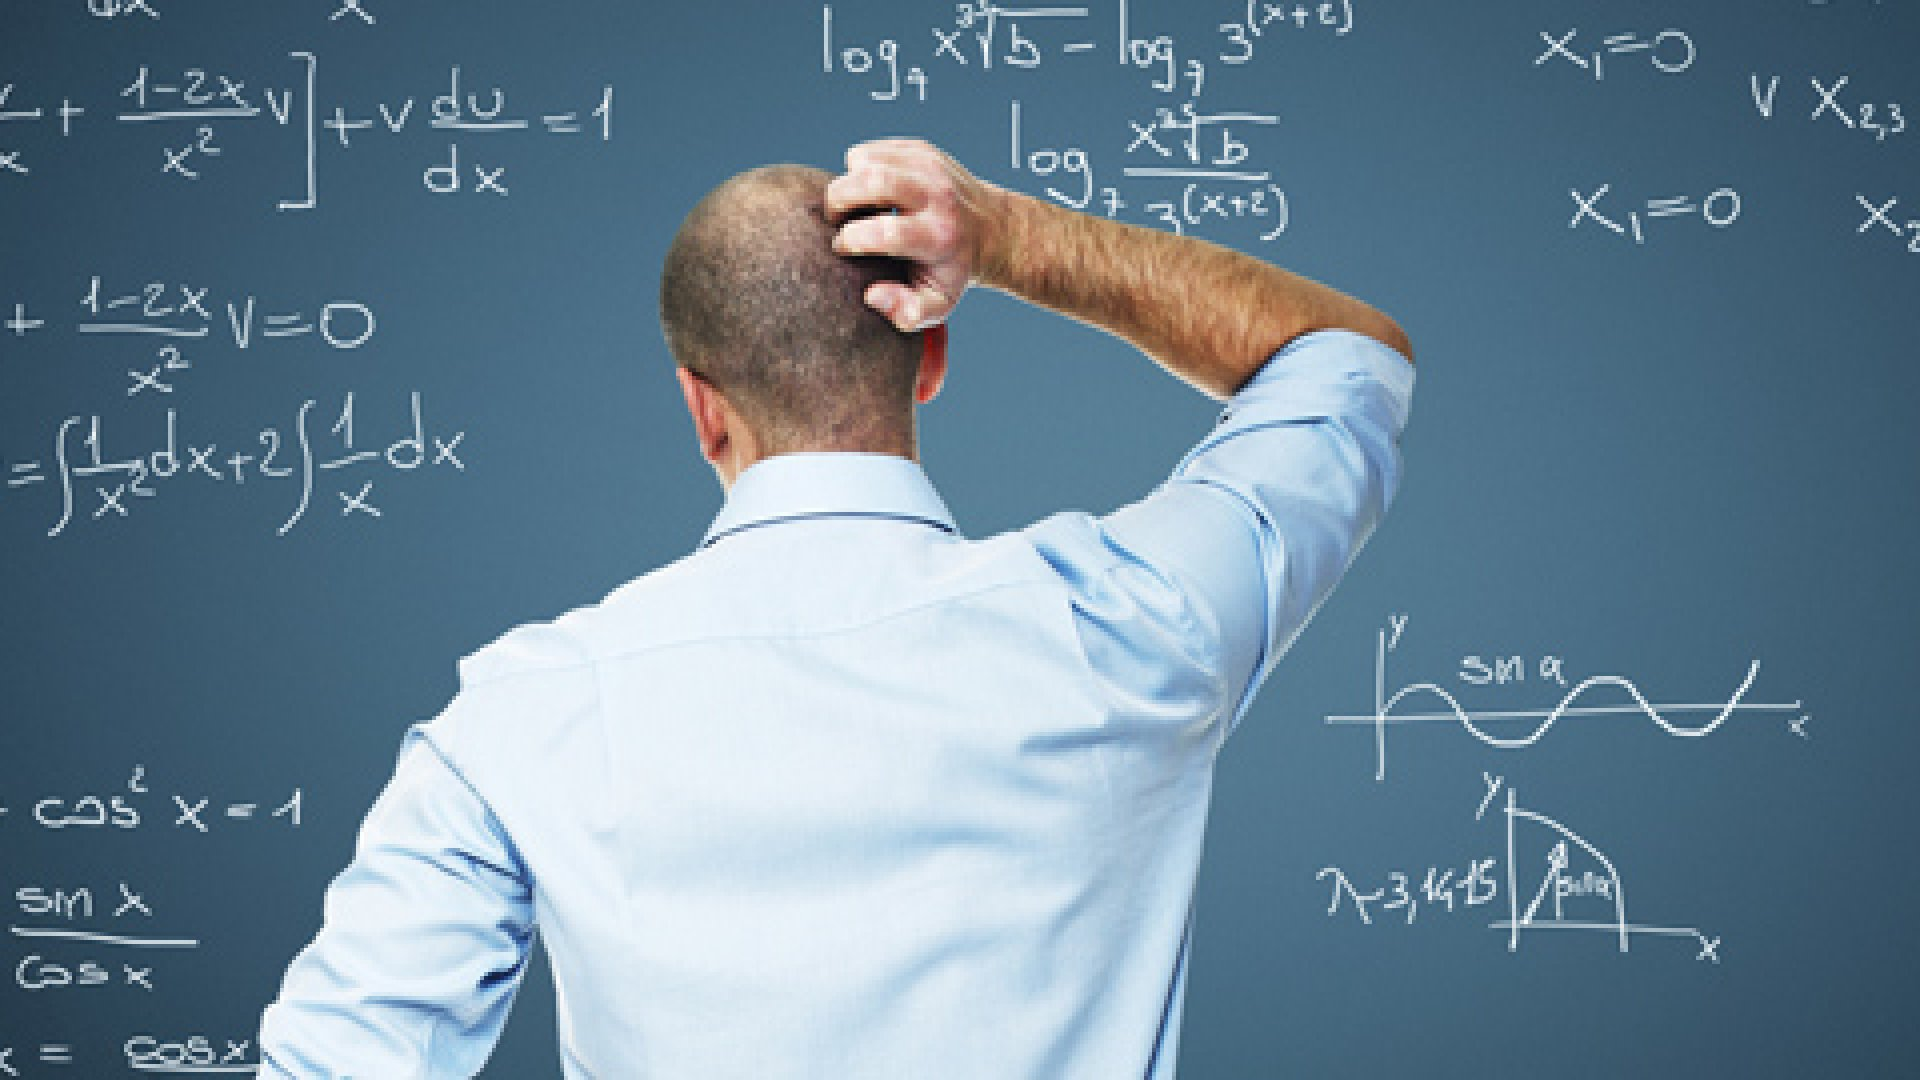 Looking for Venture Funding? Math is Your Friend